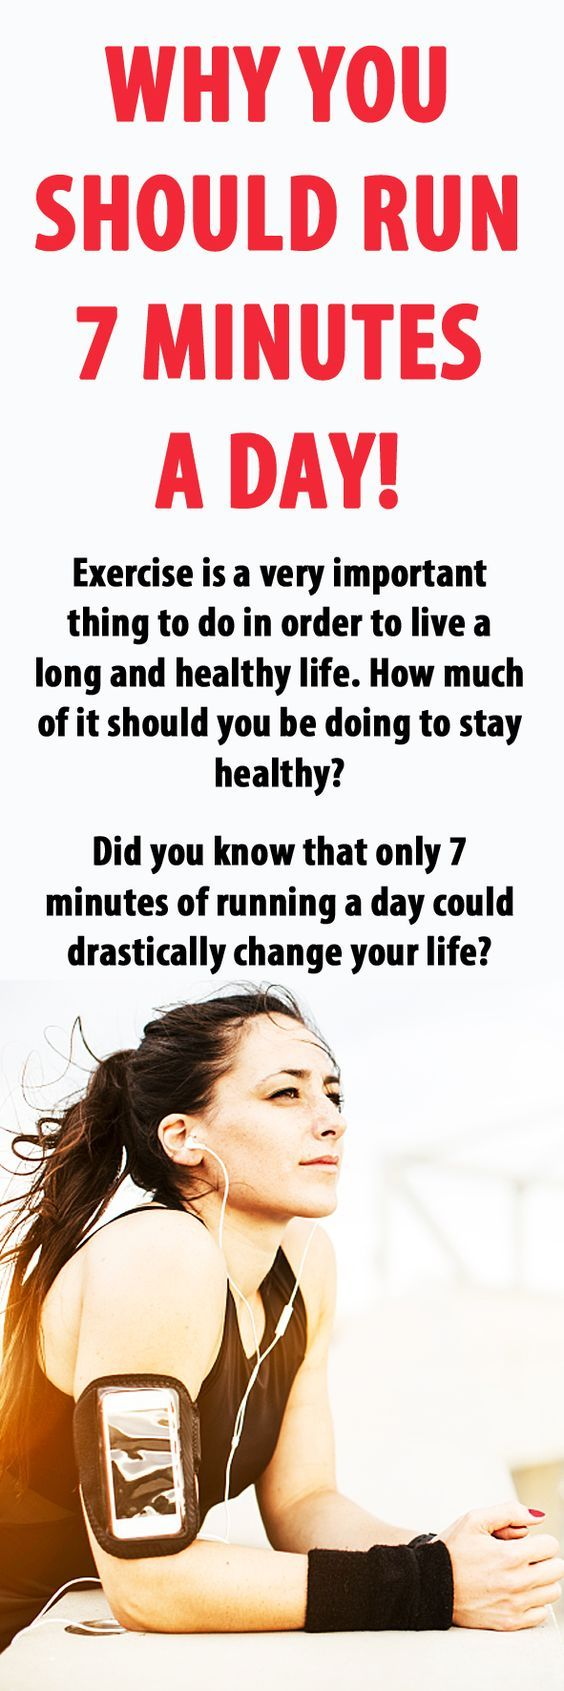 This is why you should run 7 minutes a day! #running #health #fitness #healthylifestyle